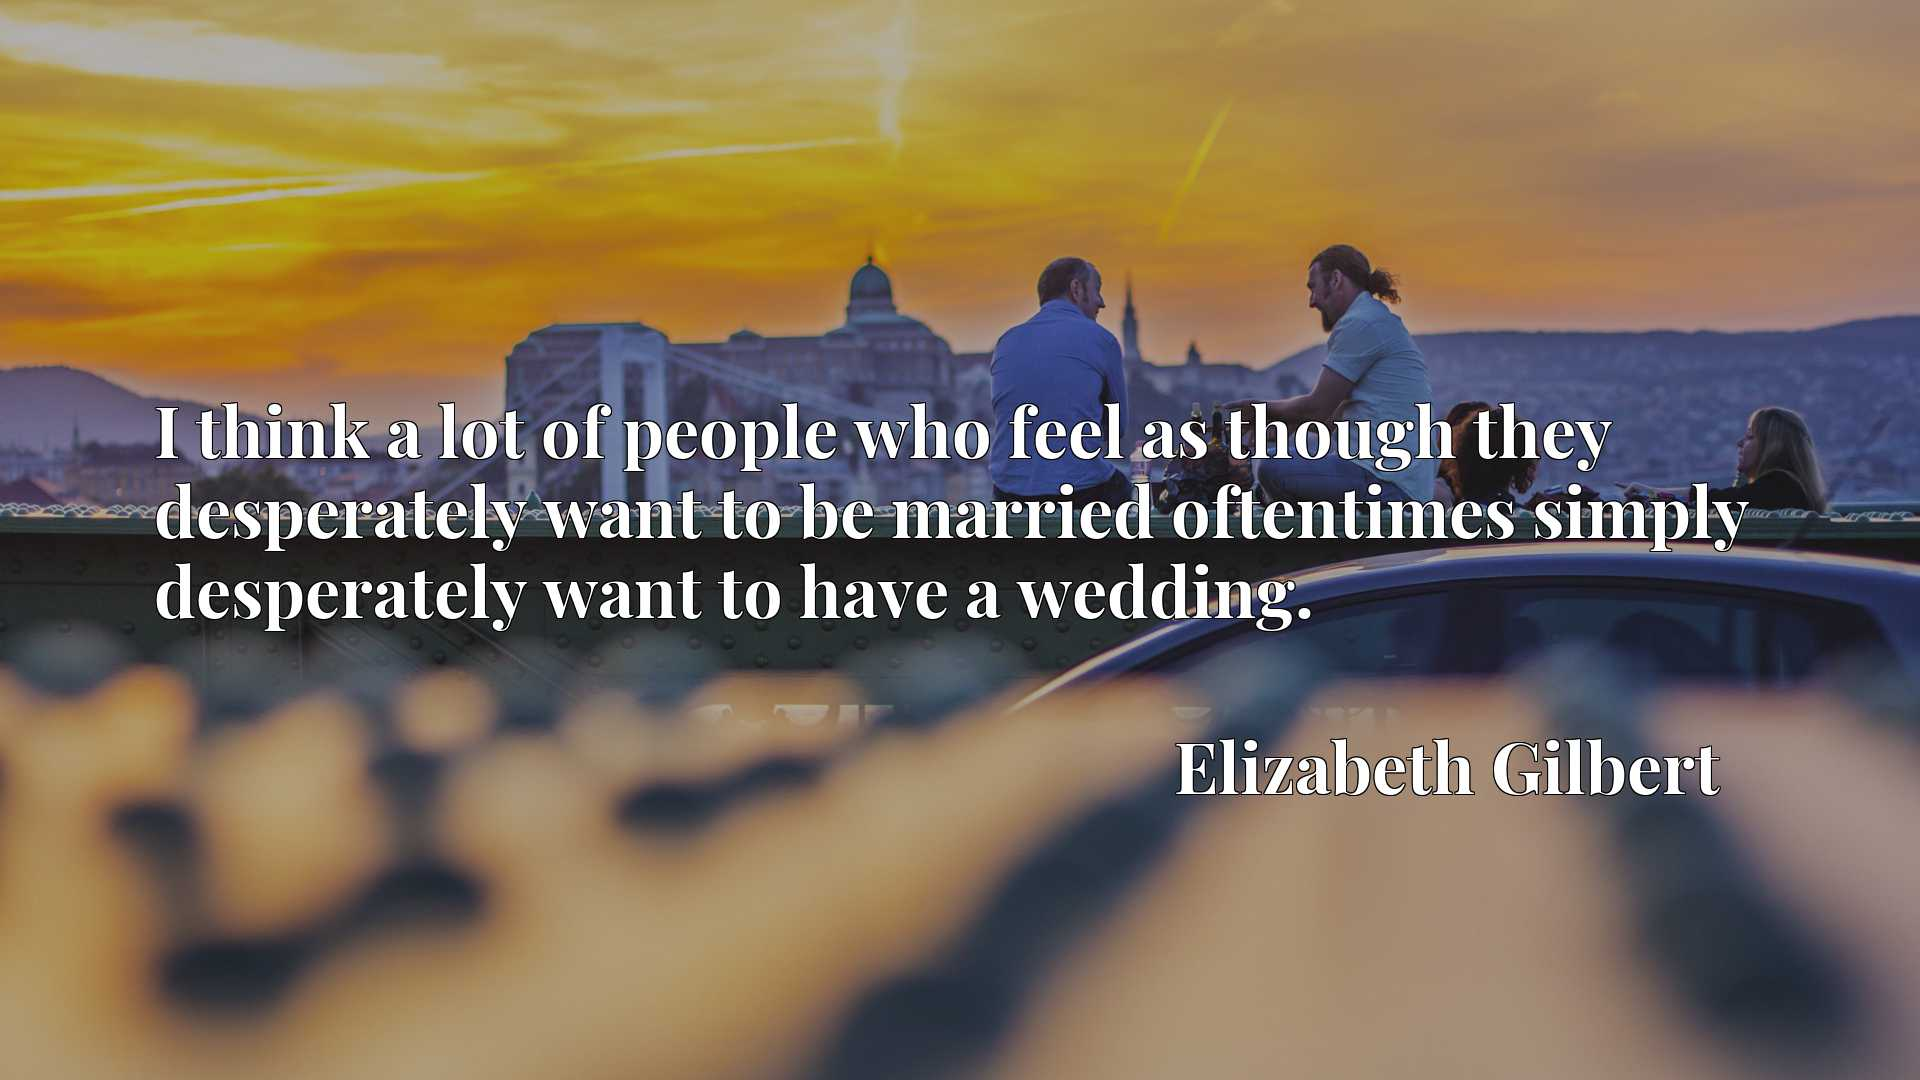 I think a lot of people who feel as though they desperately want to be married oftentimes simply desperately want to have a wedding.